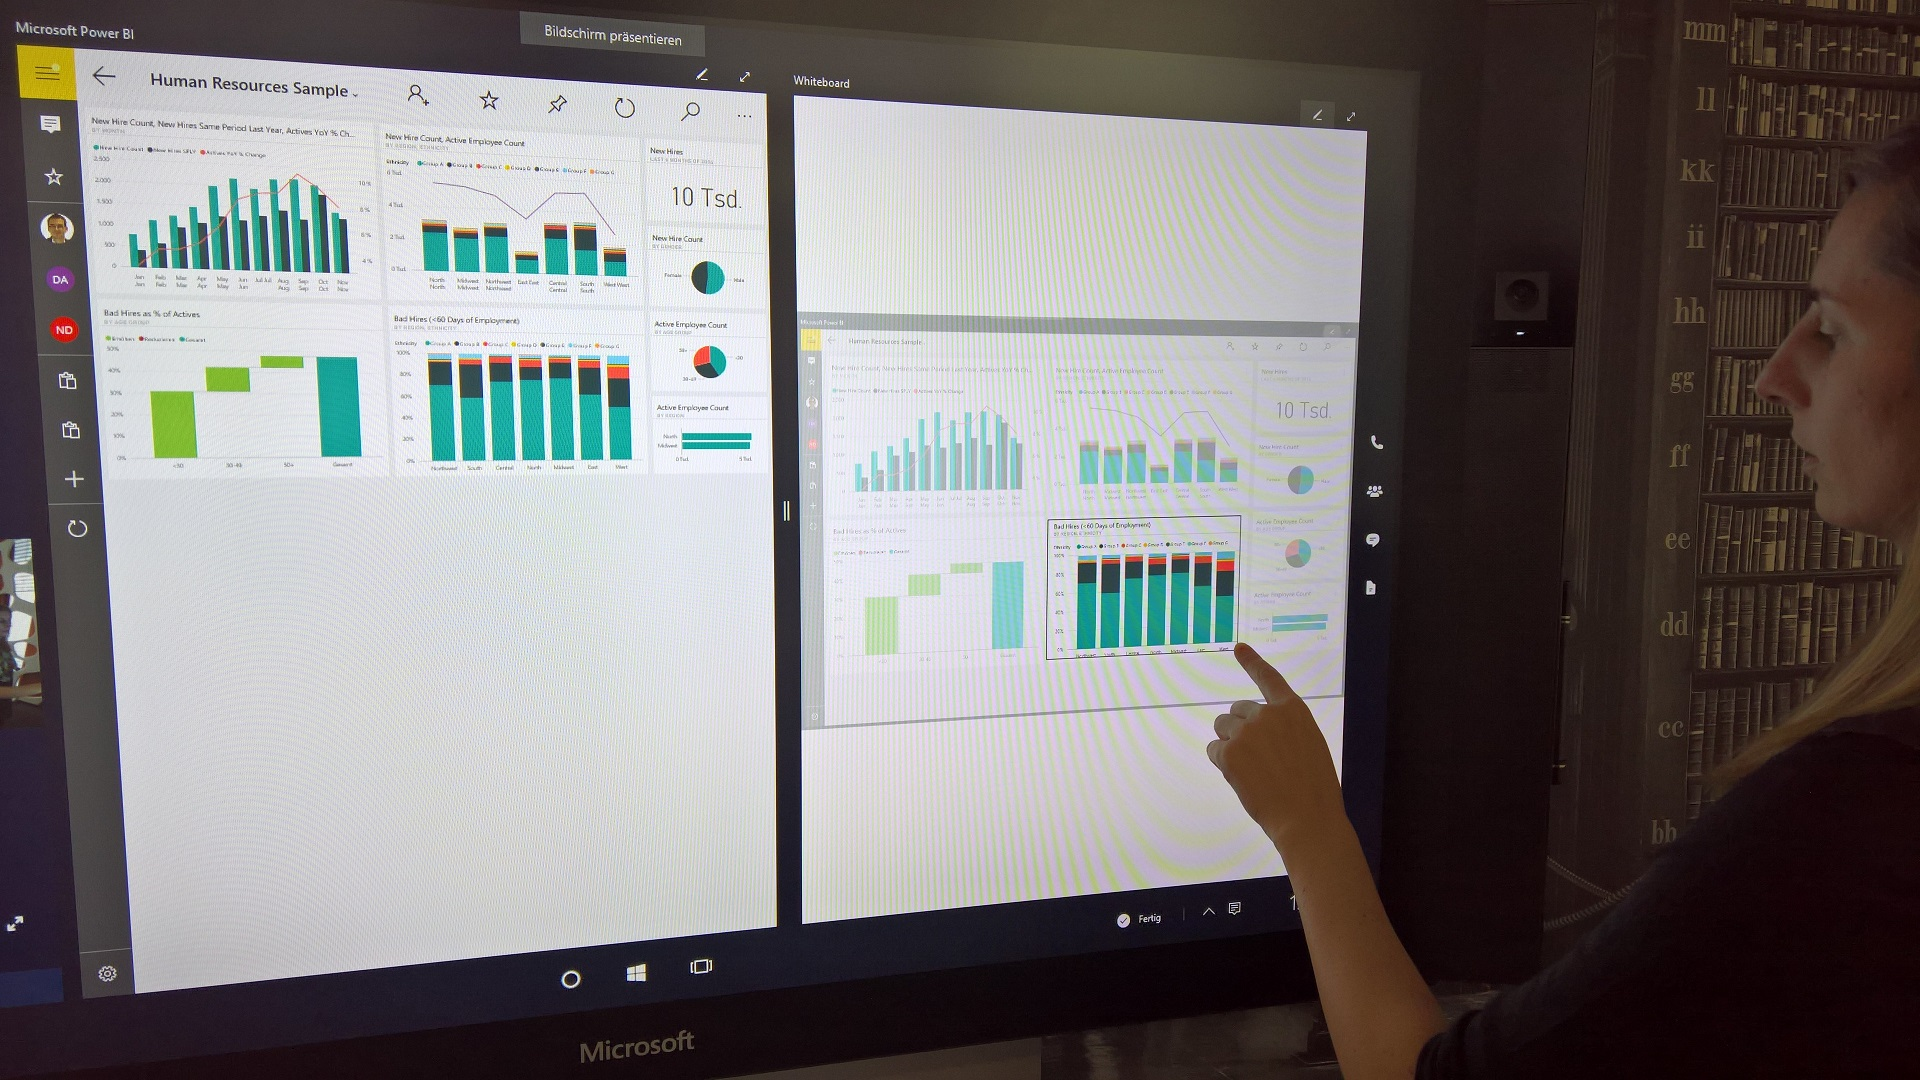 surface-hub-3b-power-bi-und-whiteboard